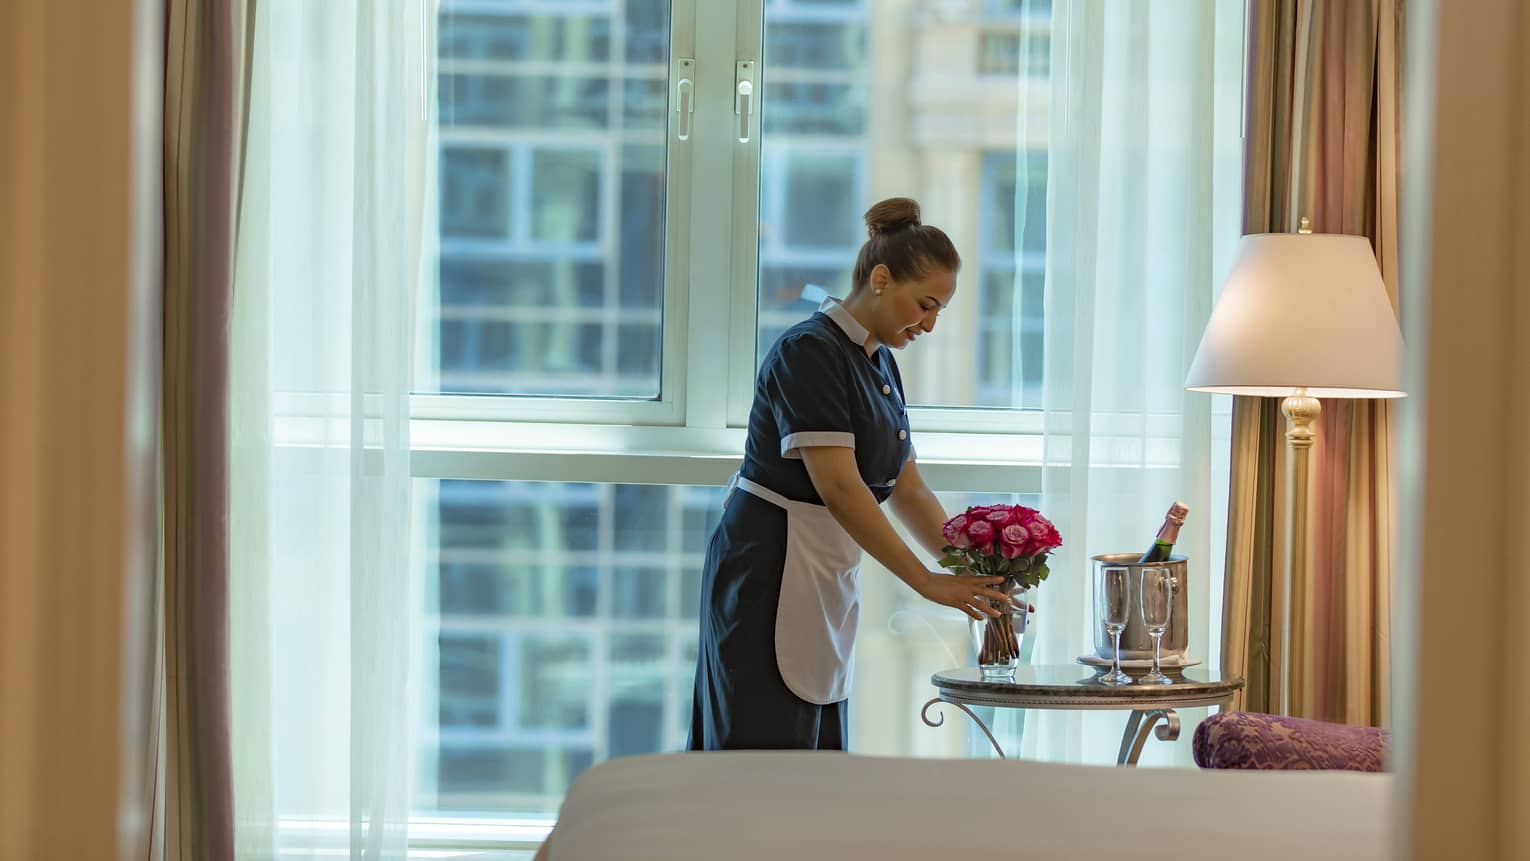 A housekeeper places a vase of pink roses on a bedside table